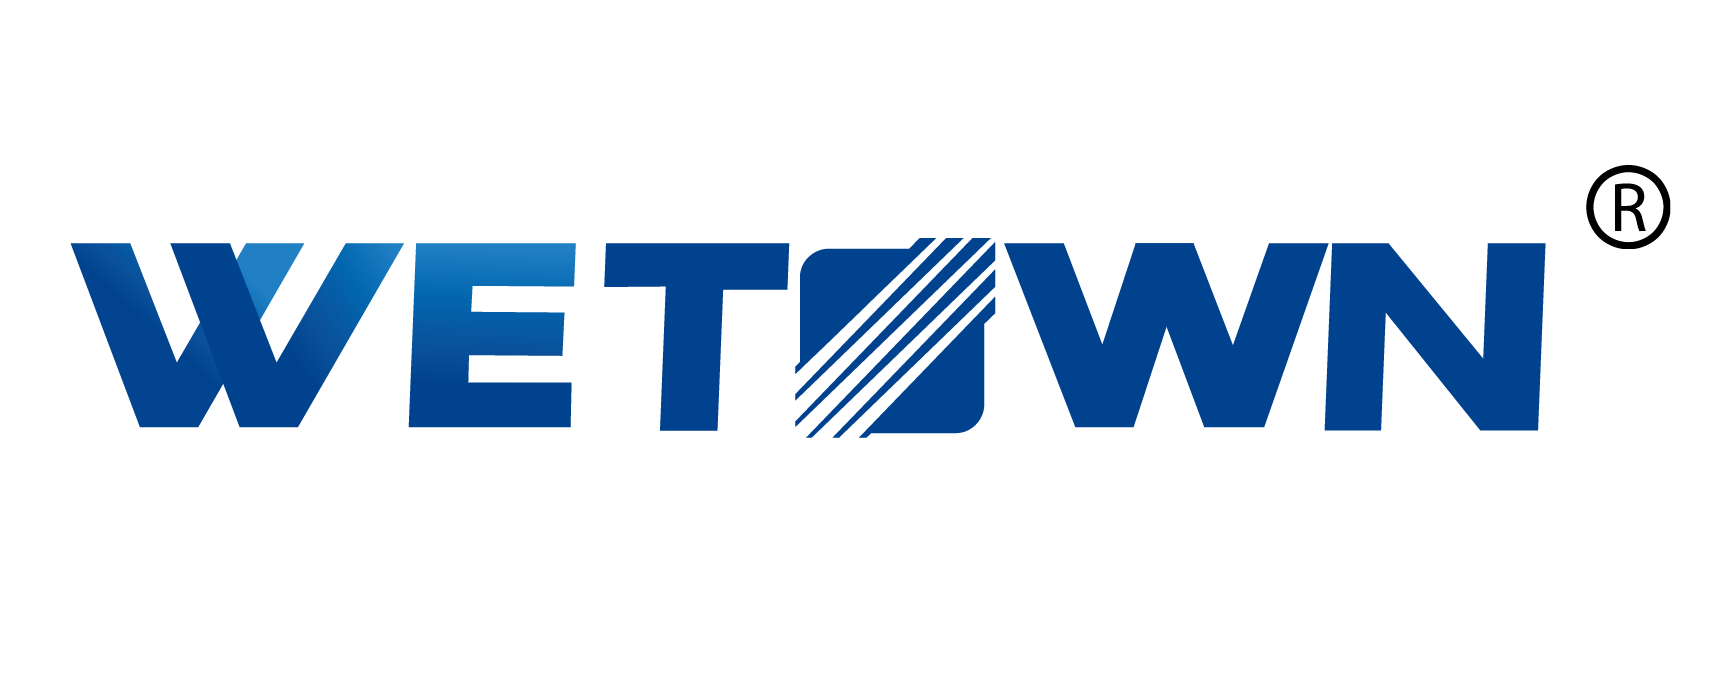 Wetown Electric Group Co.,Ltd